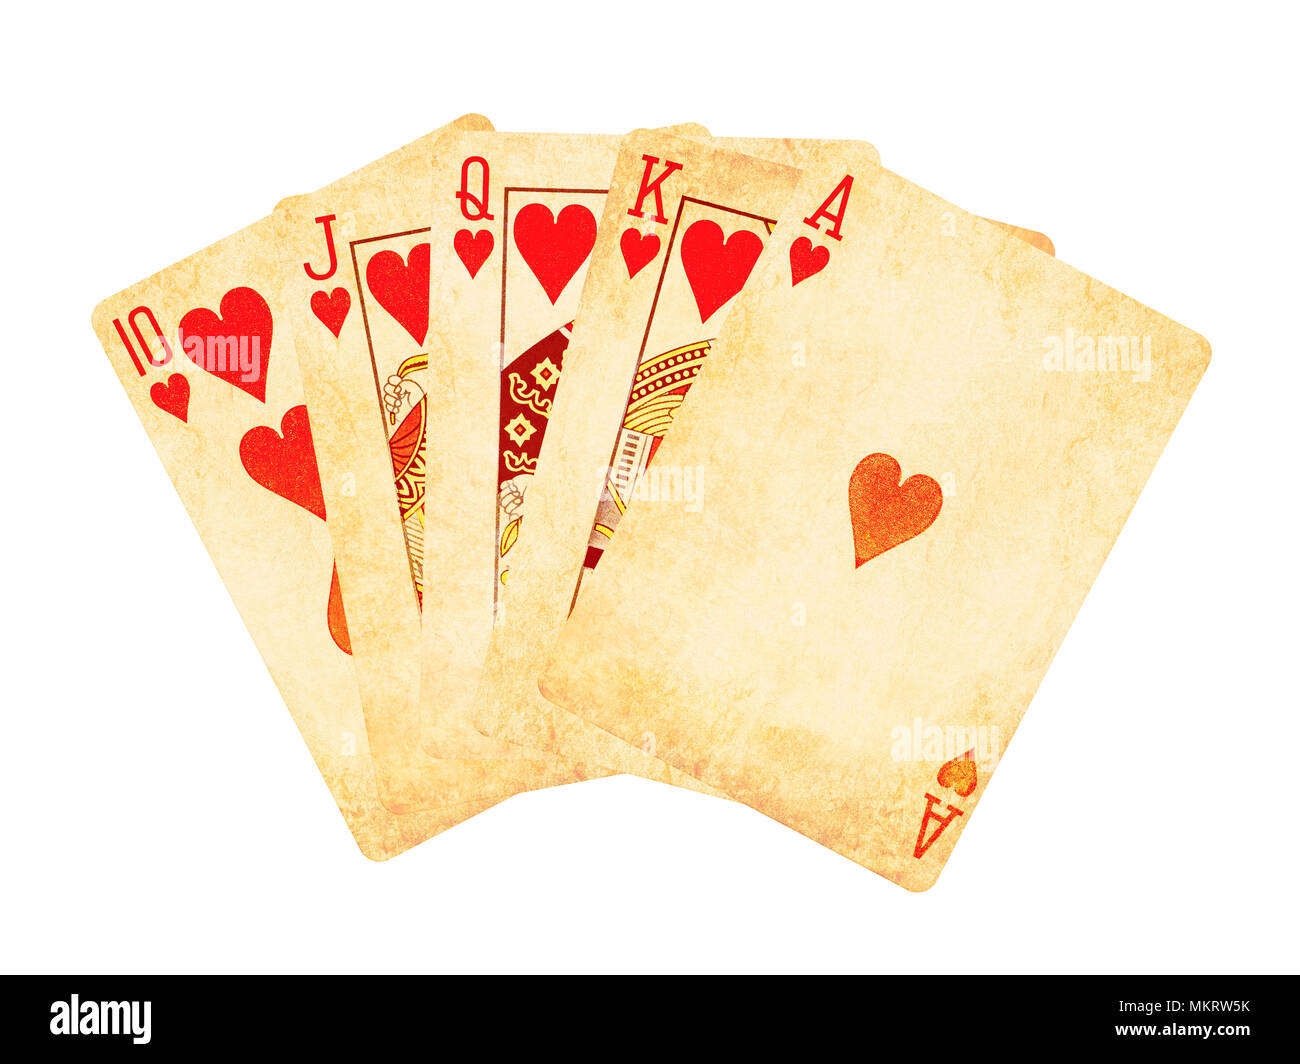 Vintage worn out hearts royal flush poker cards isolated on white - Stock Image